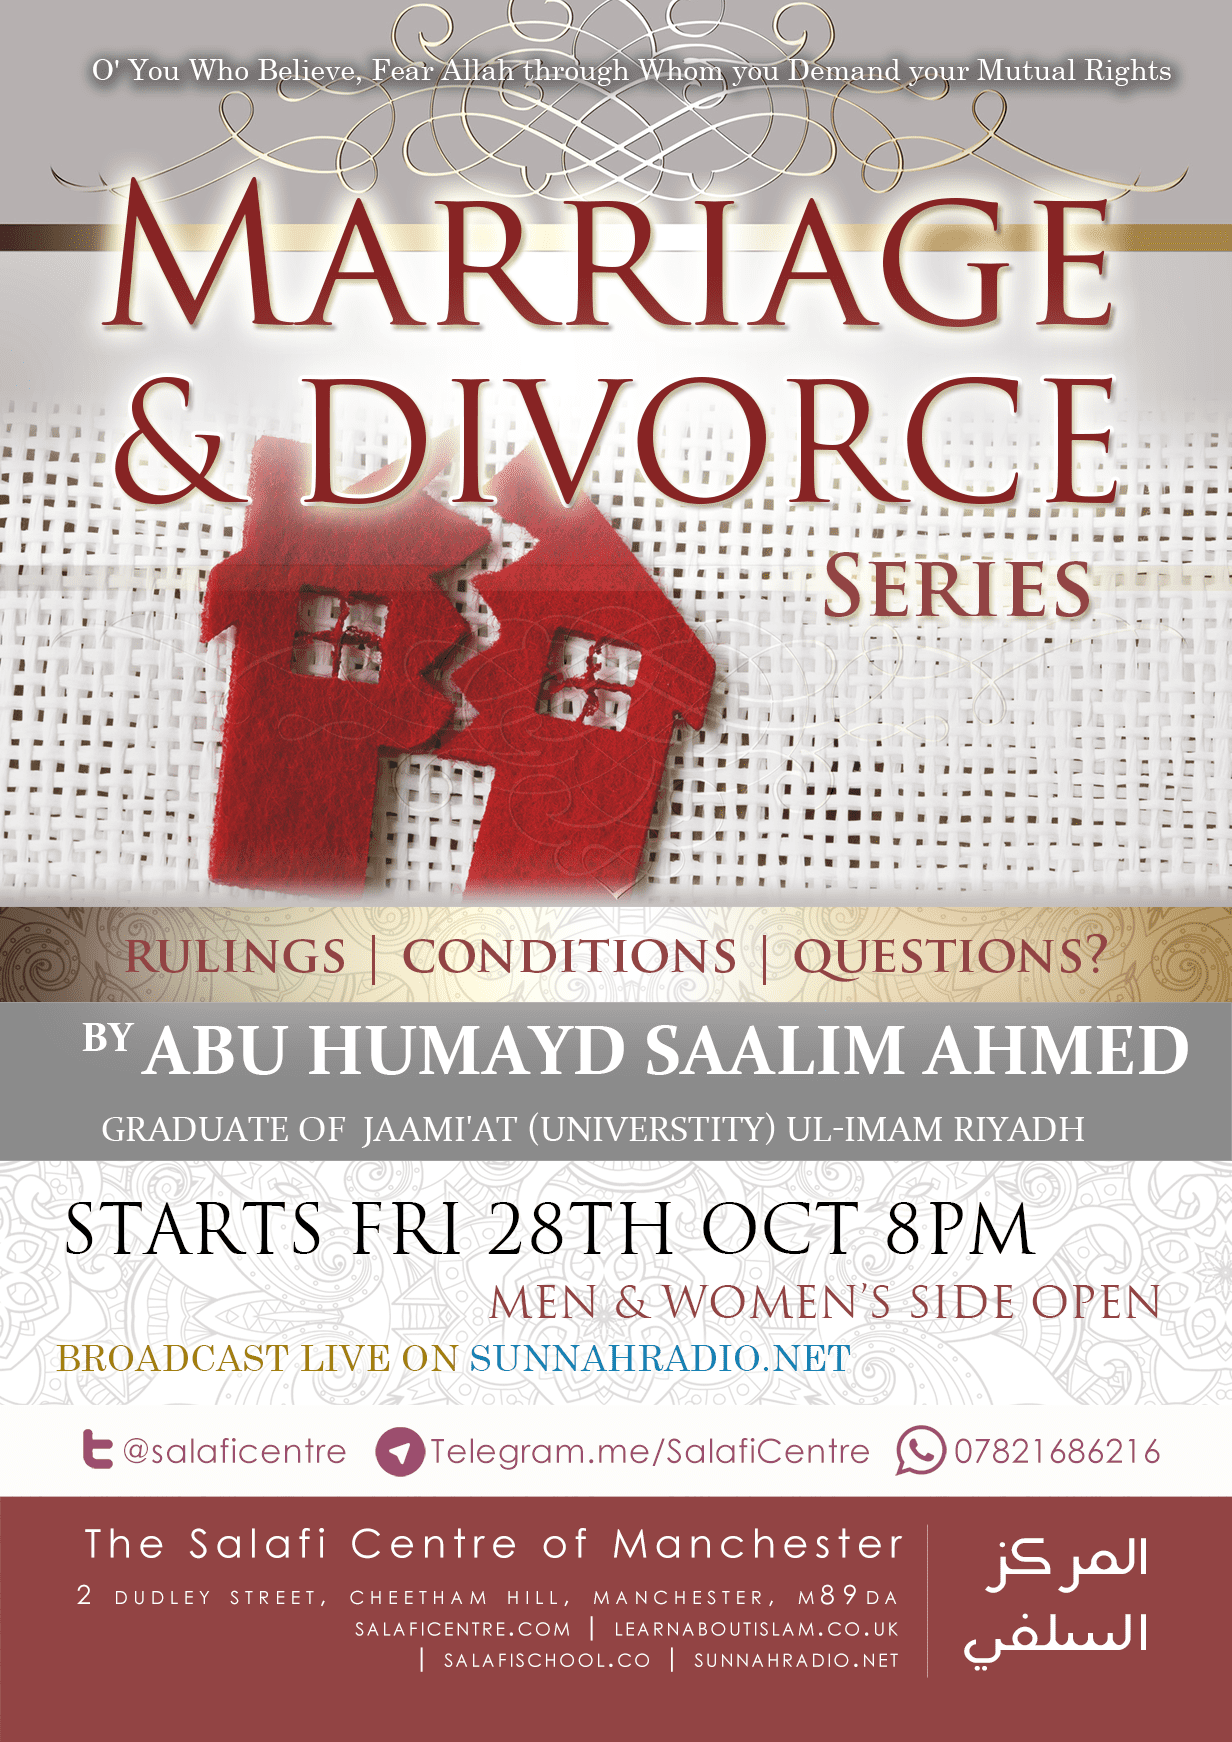 marriage-series